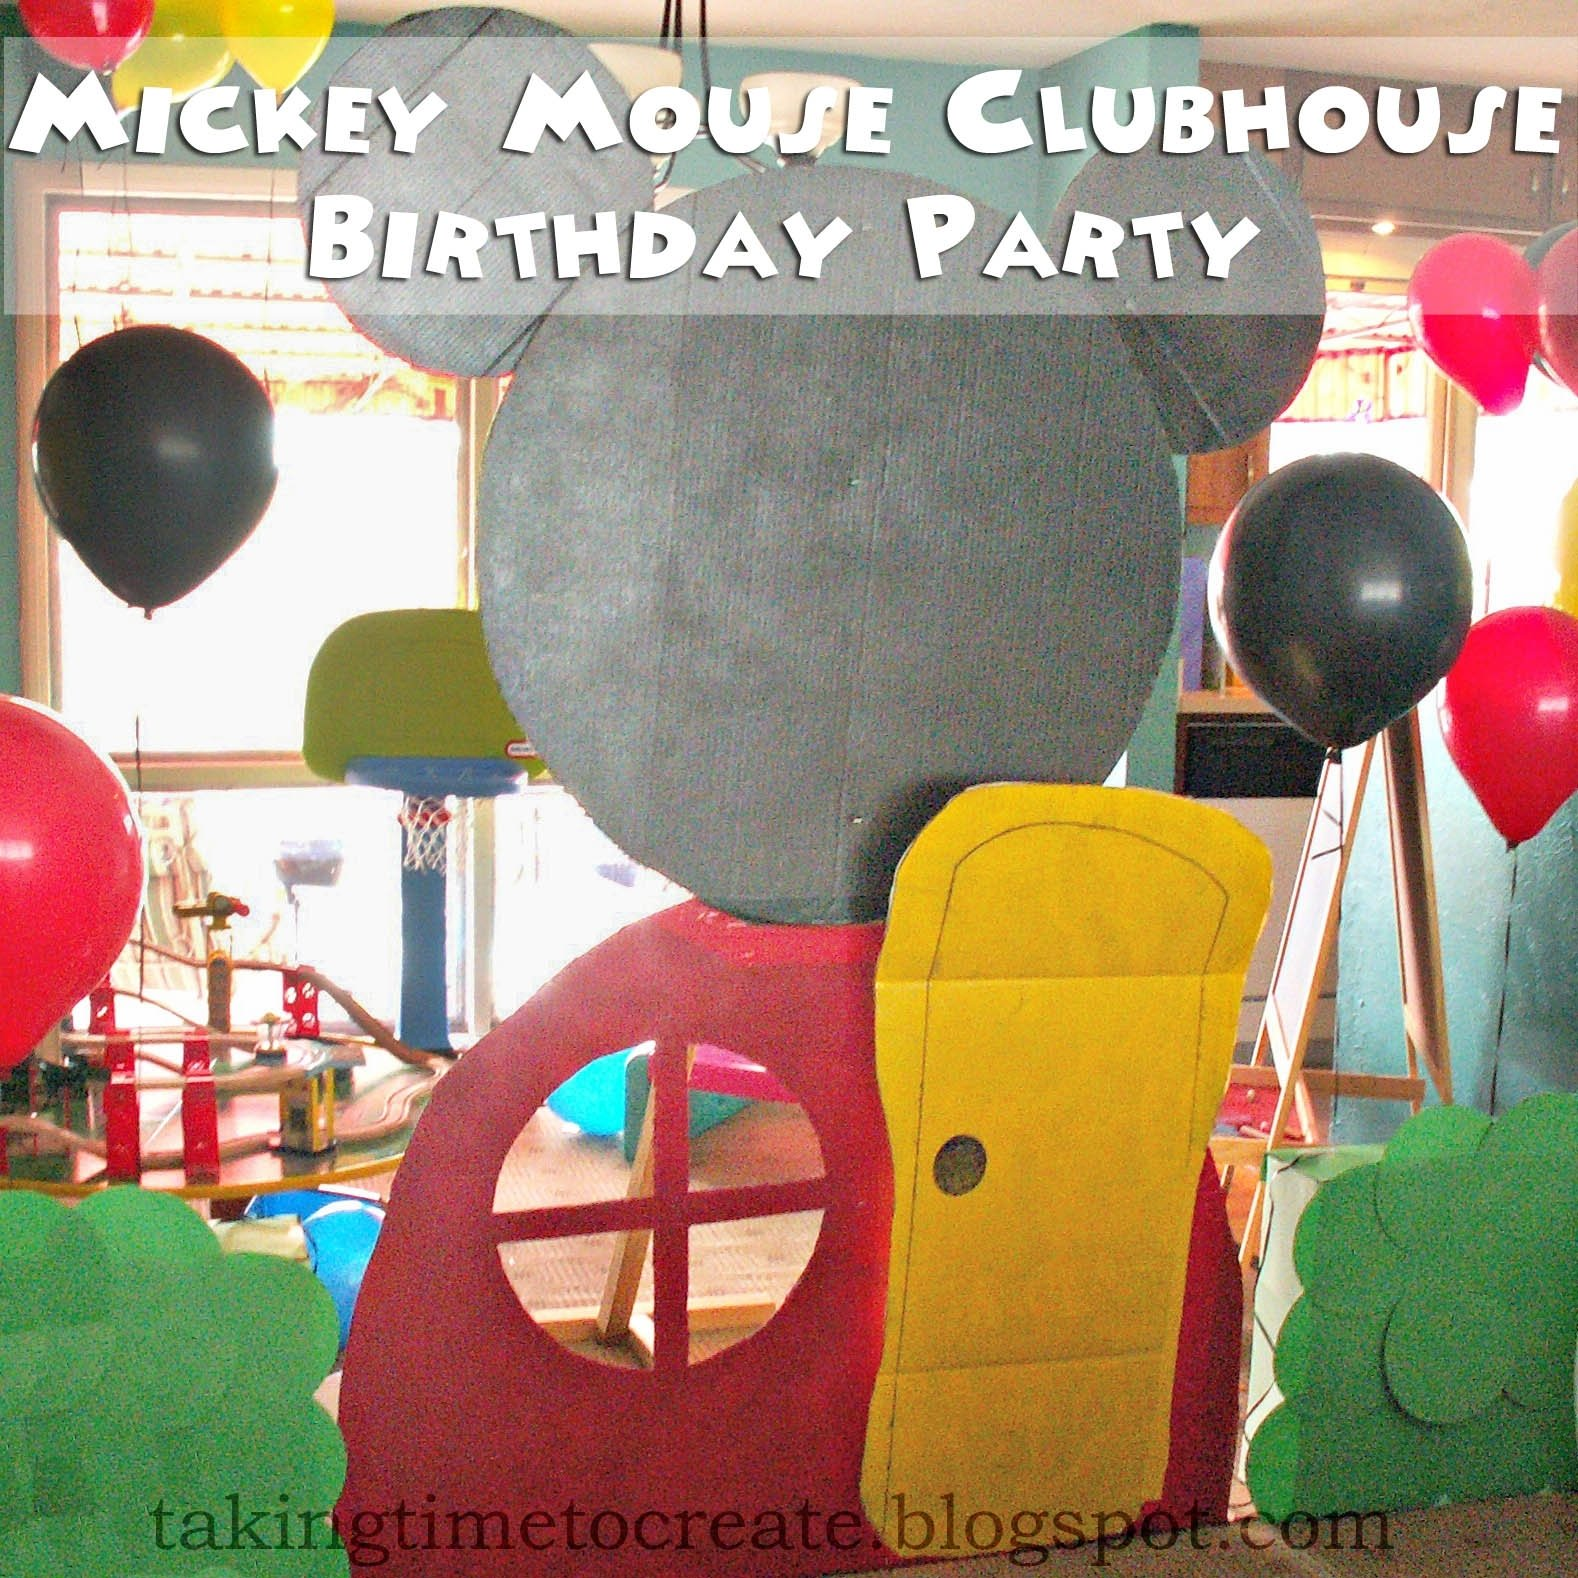 10 Attractive Mickey Mouse Clubhouse Decoration Ideas taking time to create mickey mouse clubhouse birthday party lots 1 2020